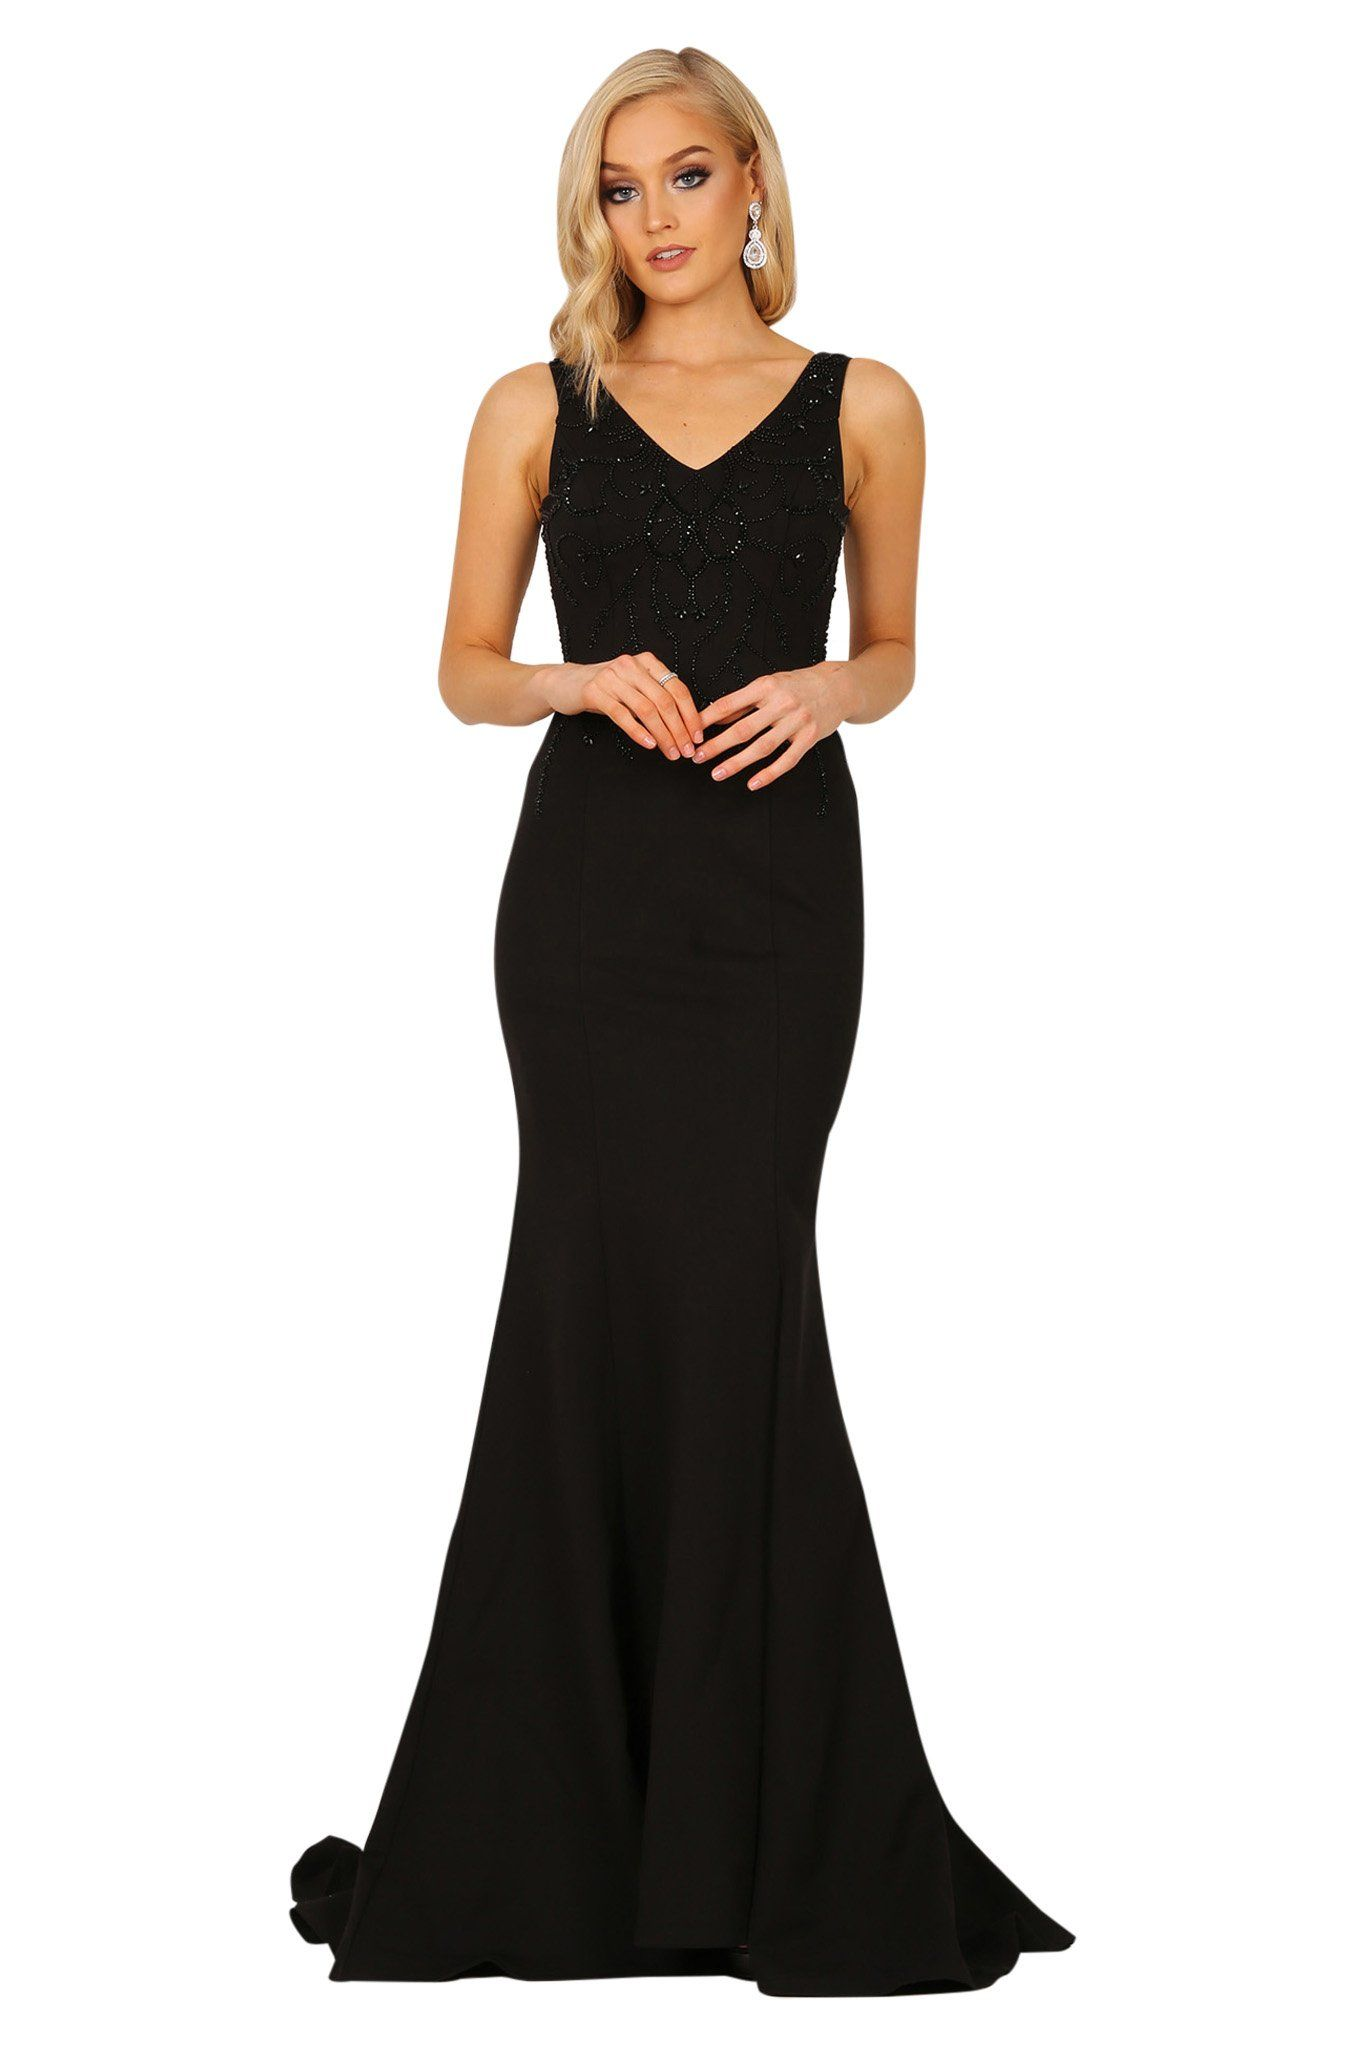 Black sleeveless fitted floor length evening gown featuring v neckline, beaded embellishment, sheer mesh at the back, and sweep mermaid train